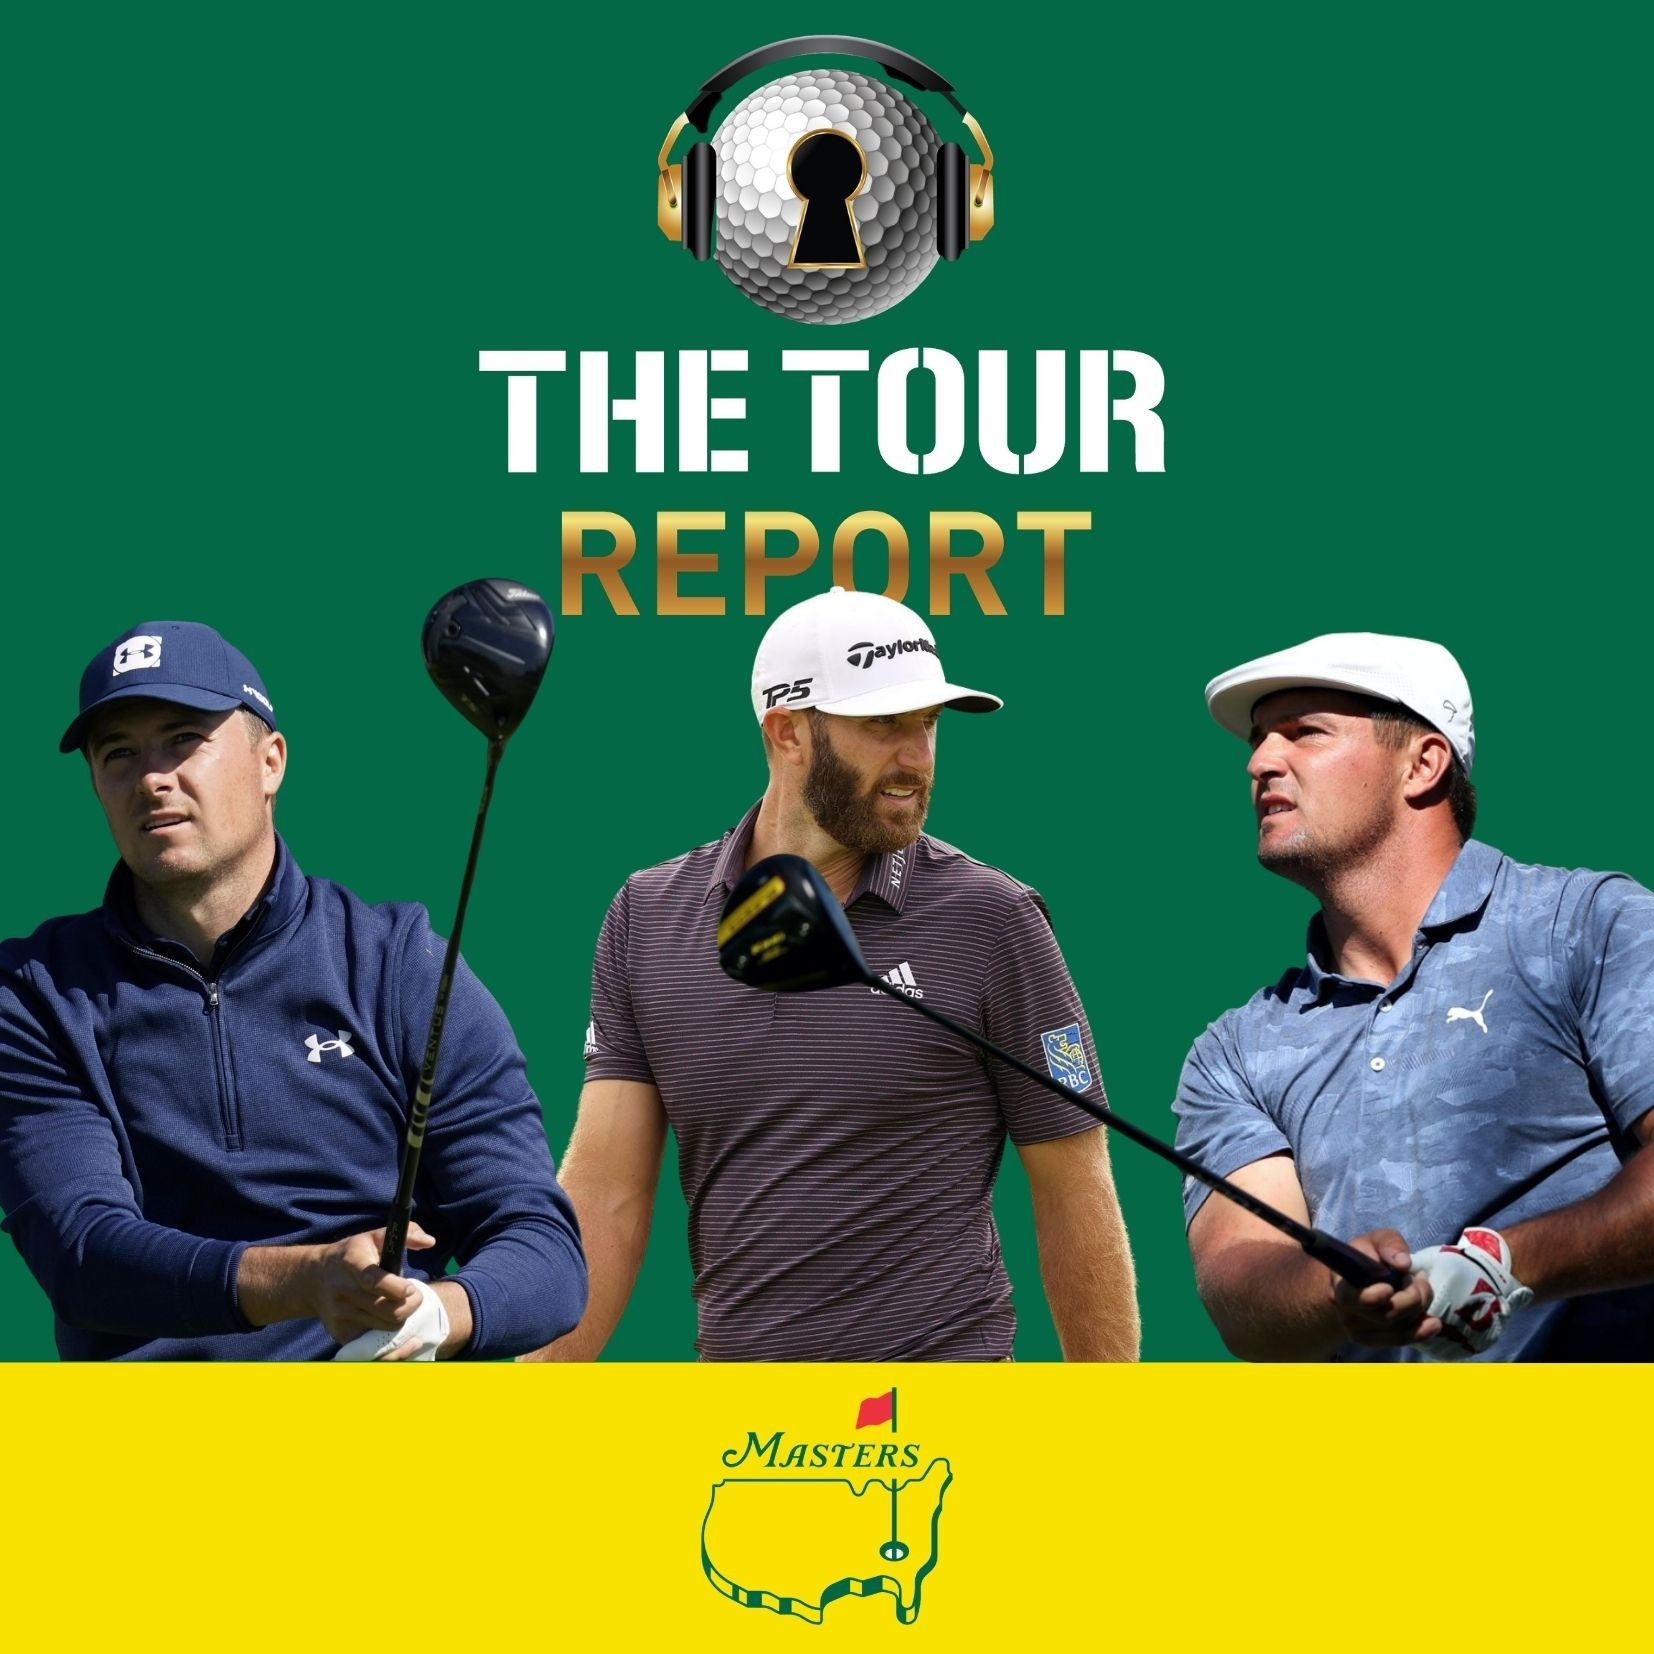 The Tour Report - The Masters